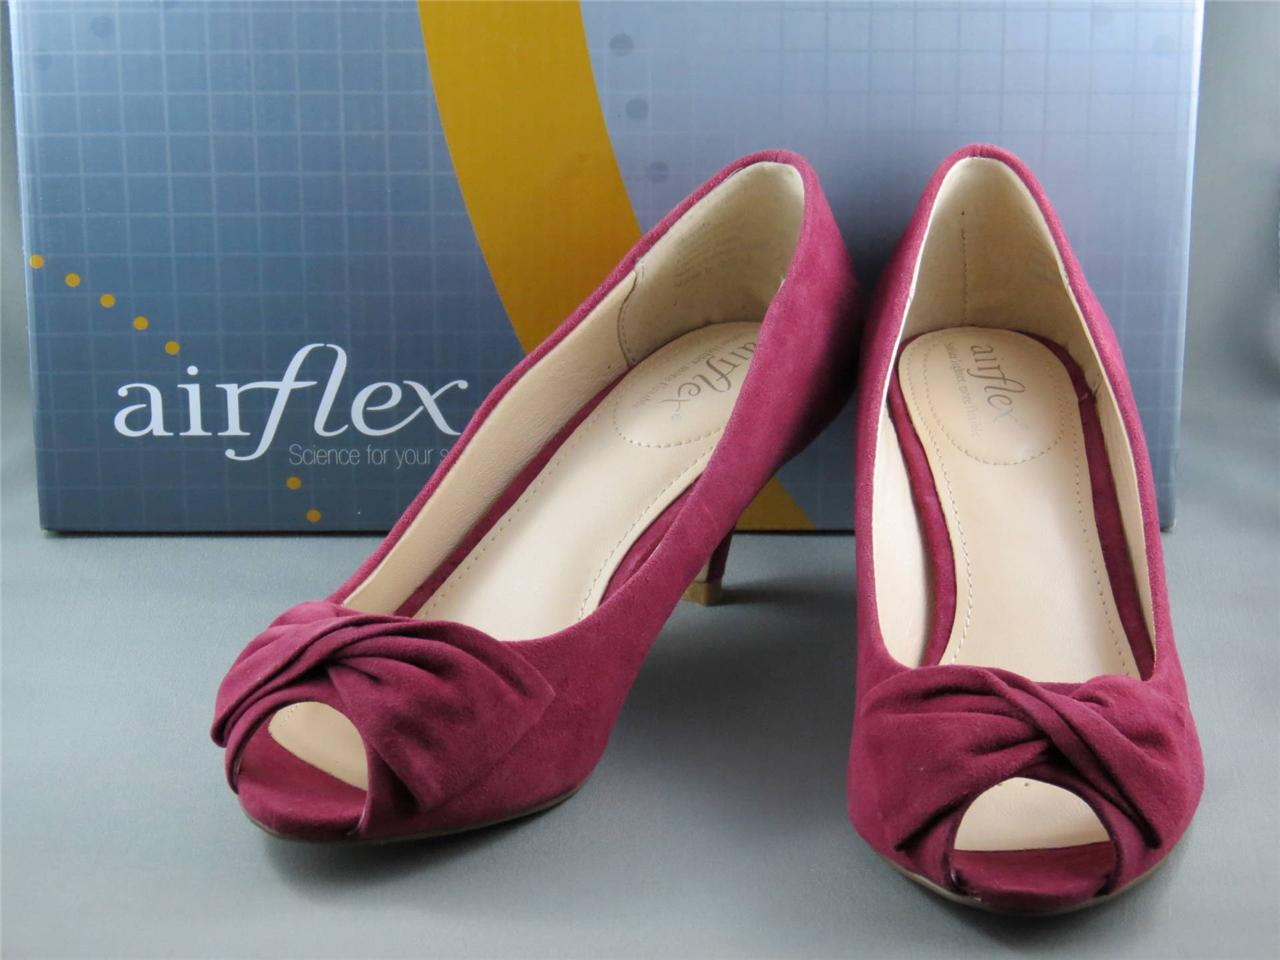 Airflex-Womens-Suede-Open-Toe-Shoes-Mid-Heel-colour-Berry-Size-5-BNIB